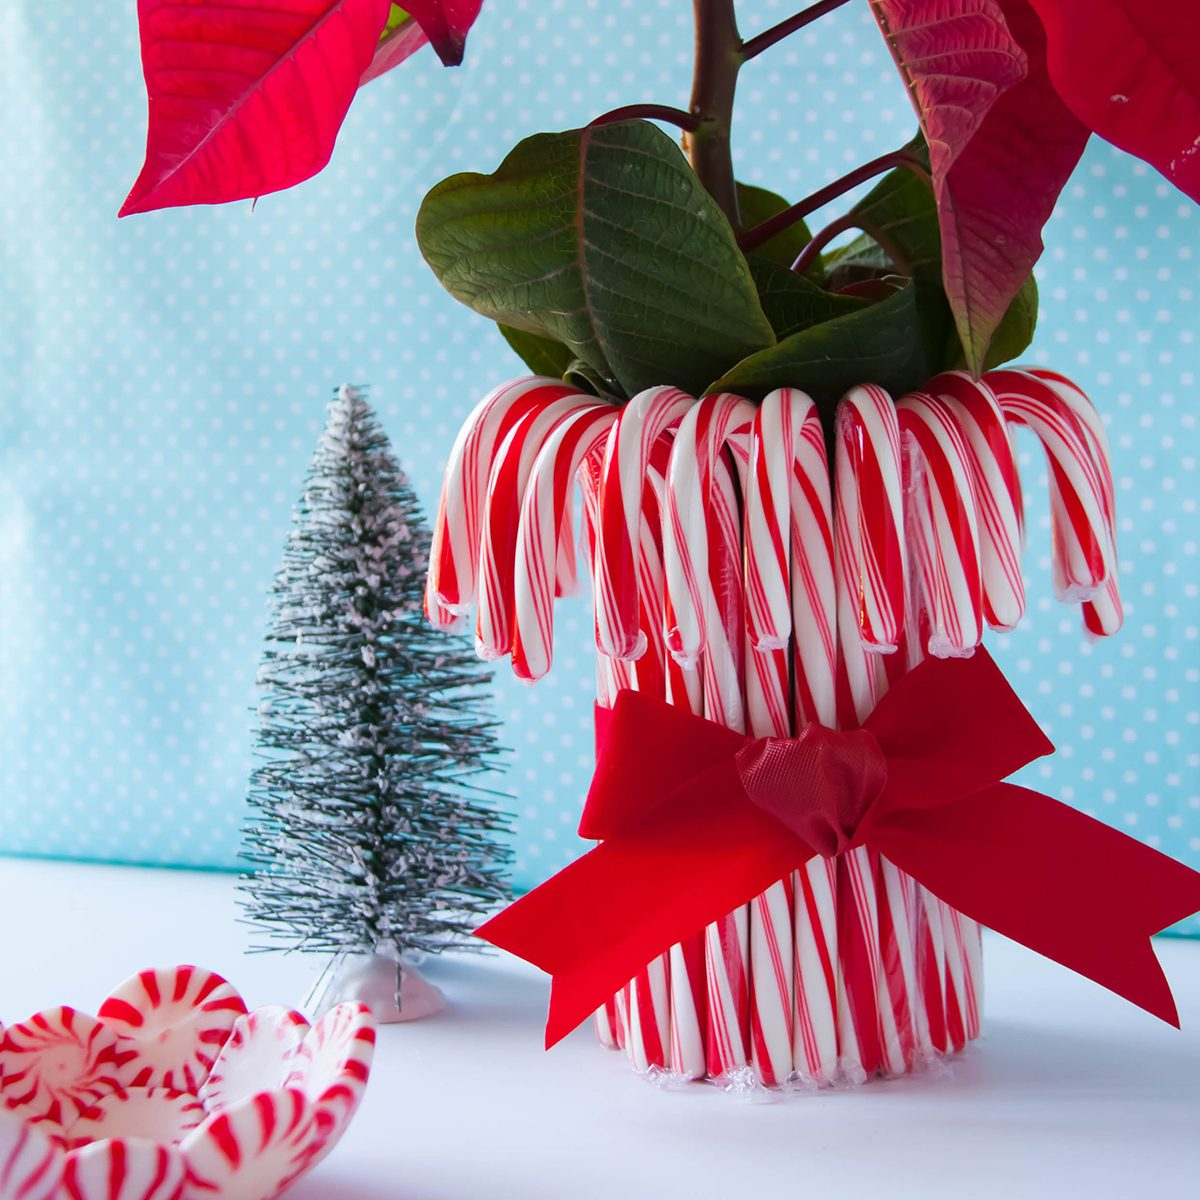 Christmas crafts using candy canes and mints